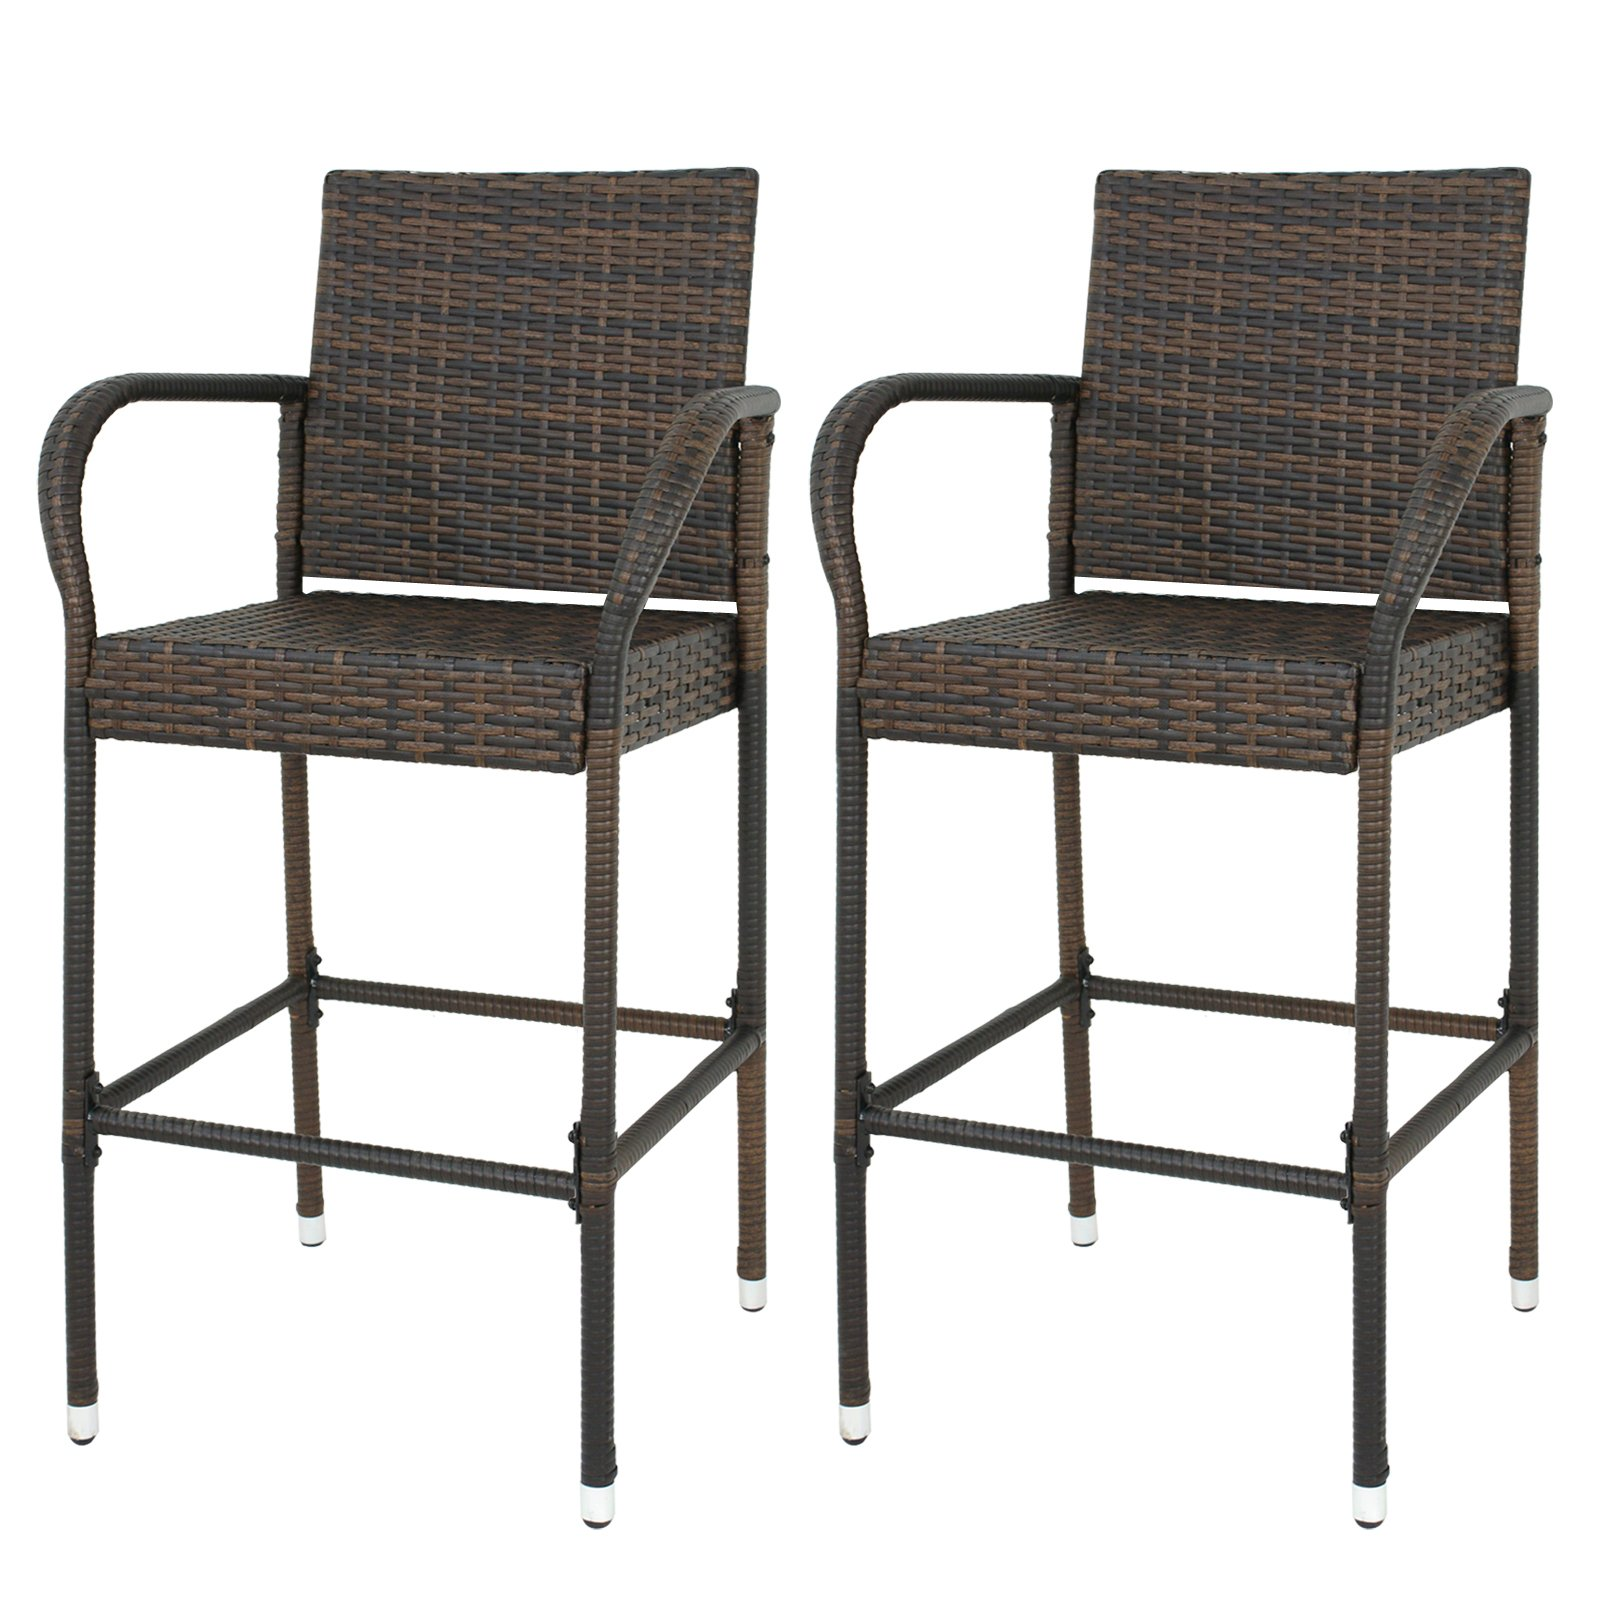 Nova Microdermabrasion Rattan Wicker Bar Stool Outdoor Backyard Chair Patio Furniture Chair with Armrest – Set of 2